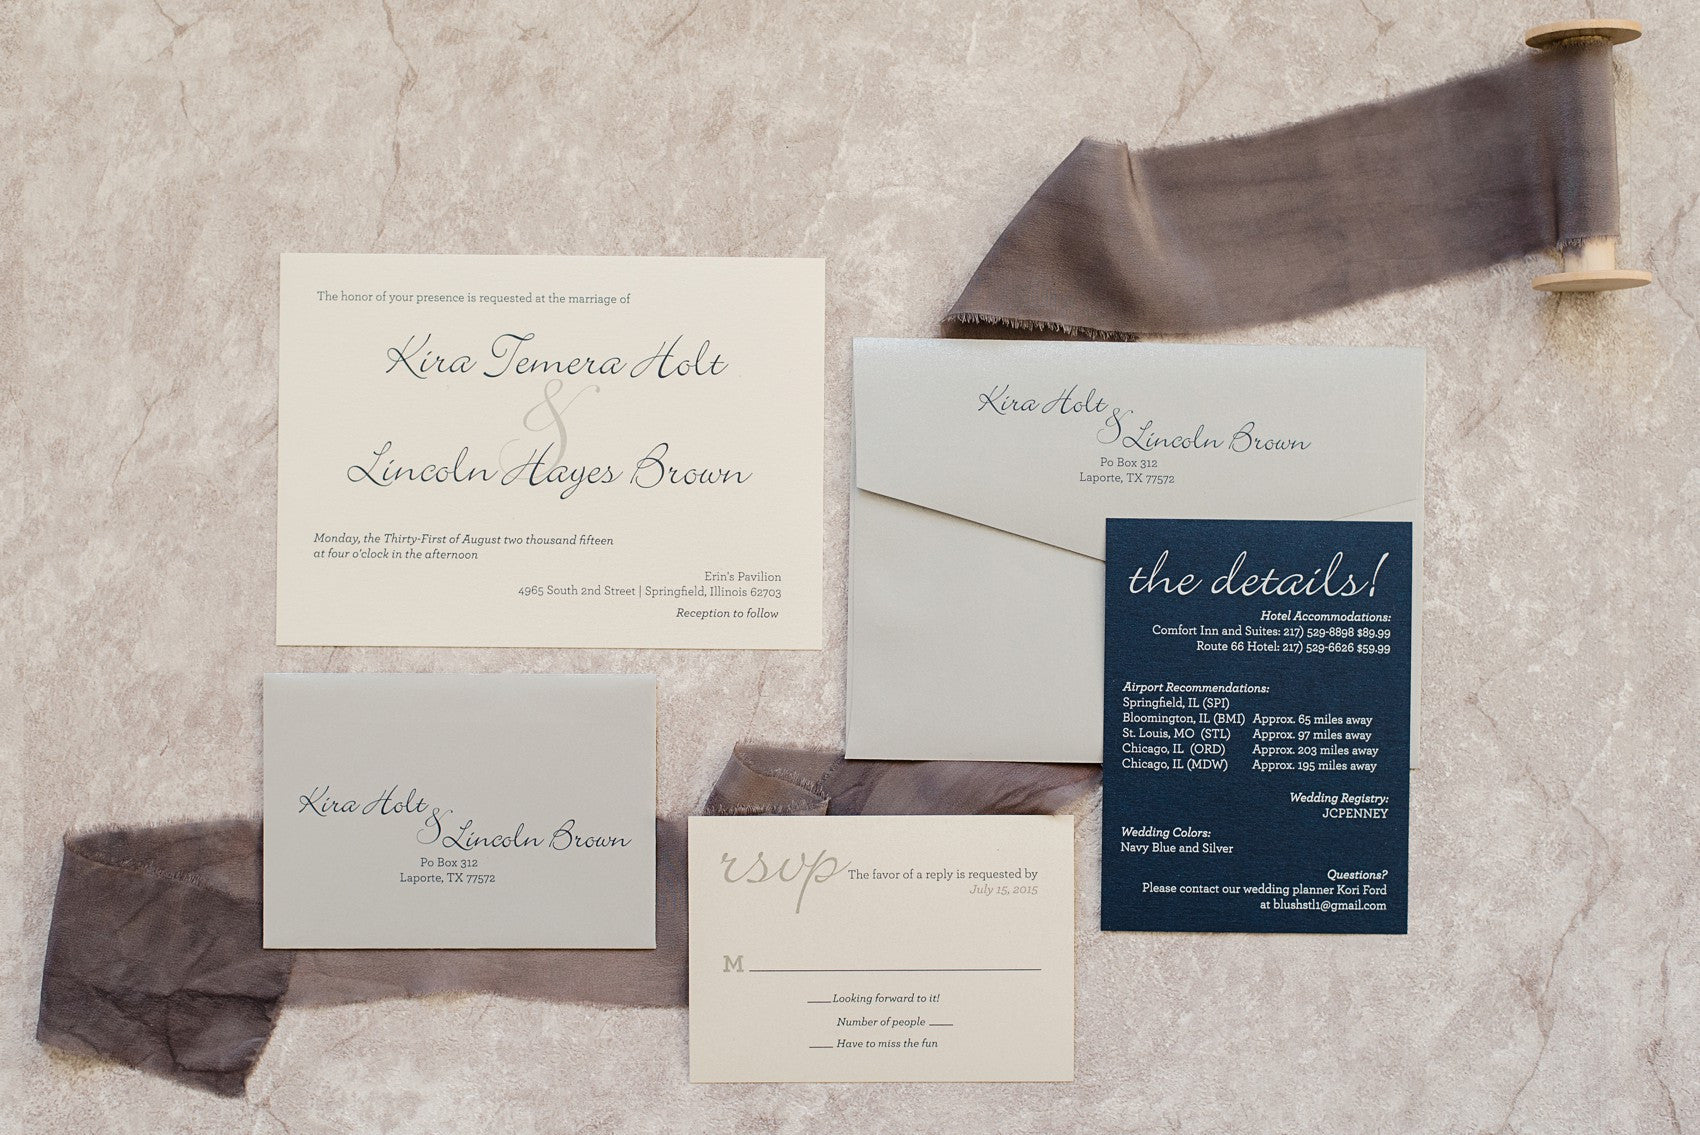 Kira & Lincoln – Invited by LamaWorks